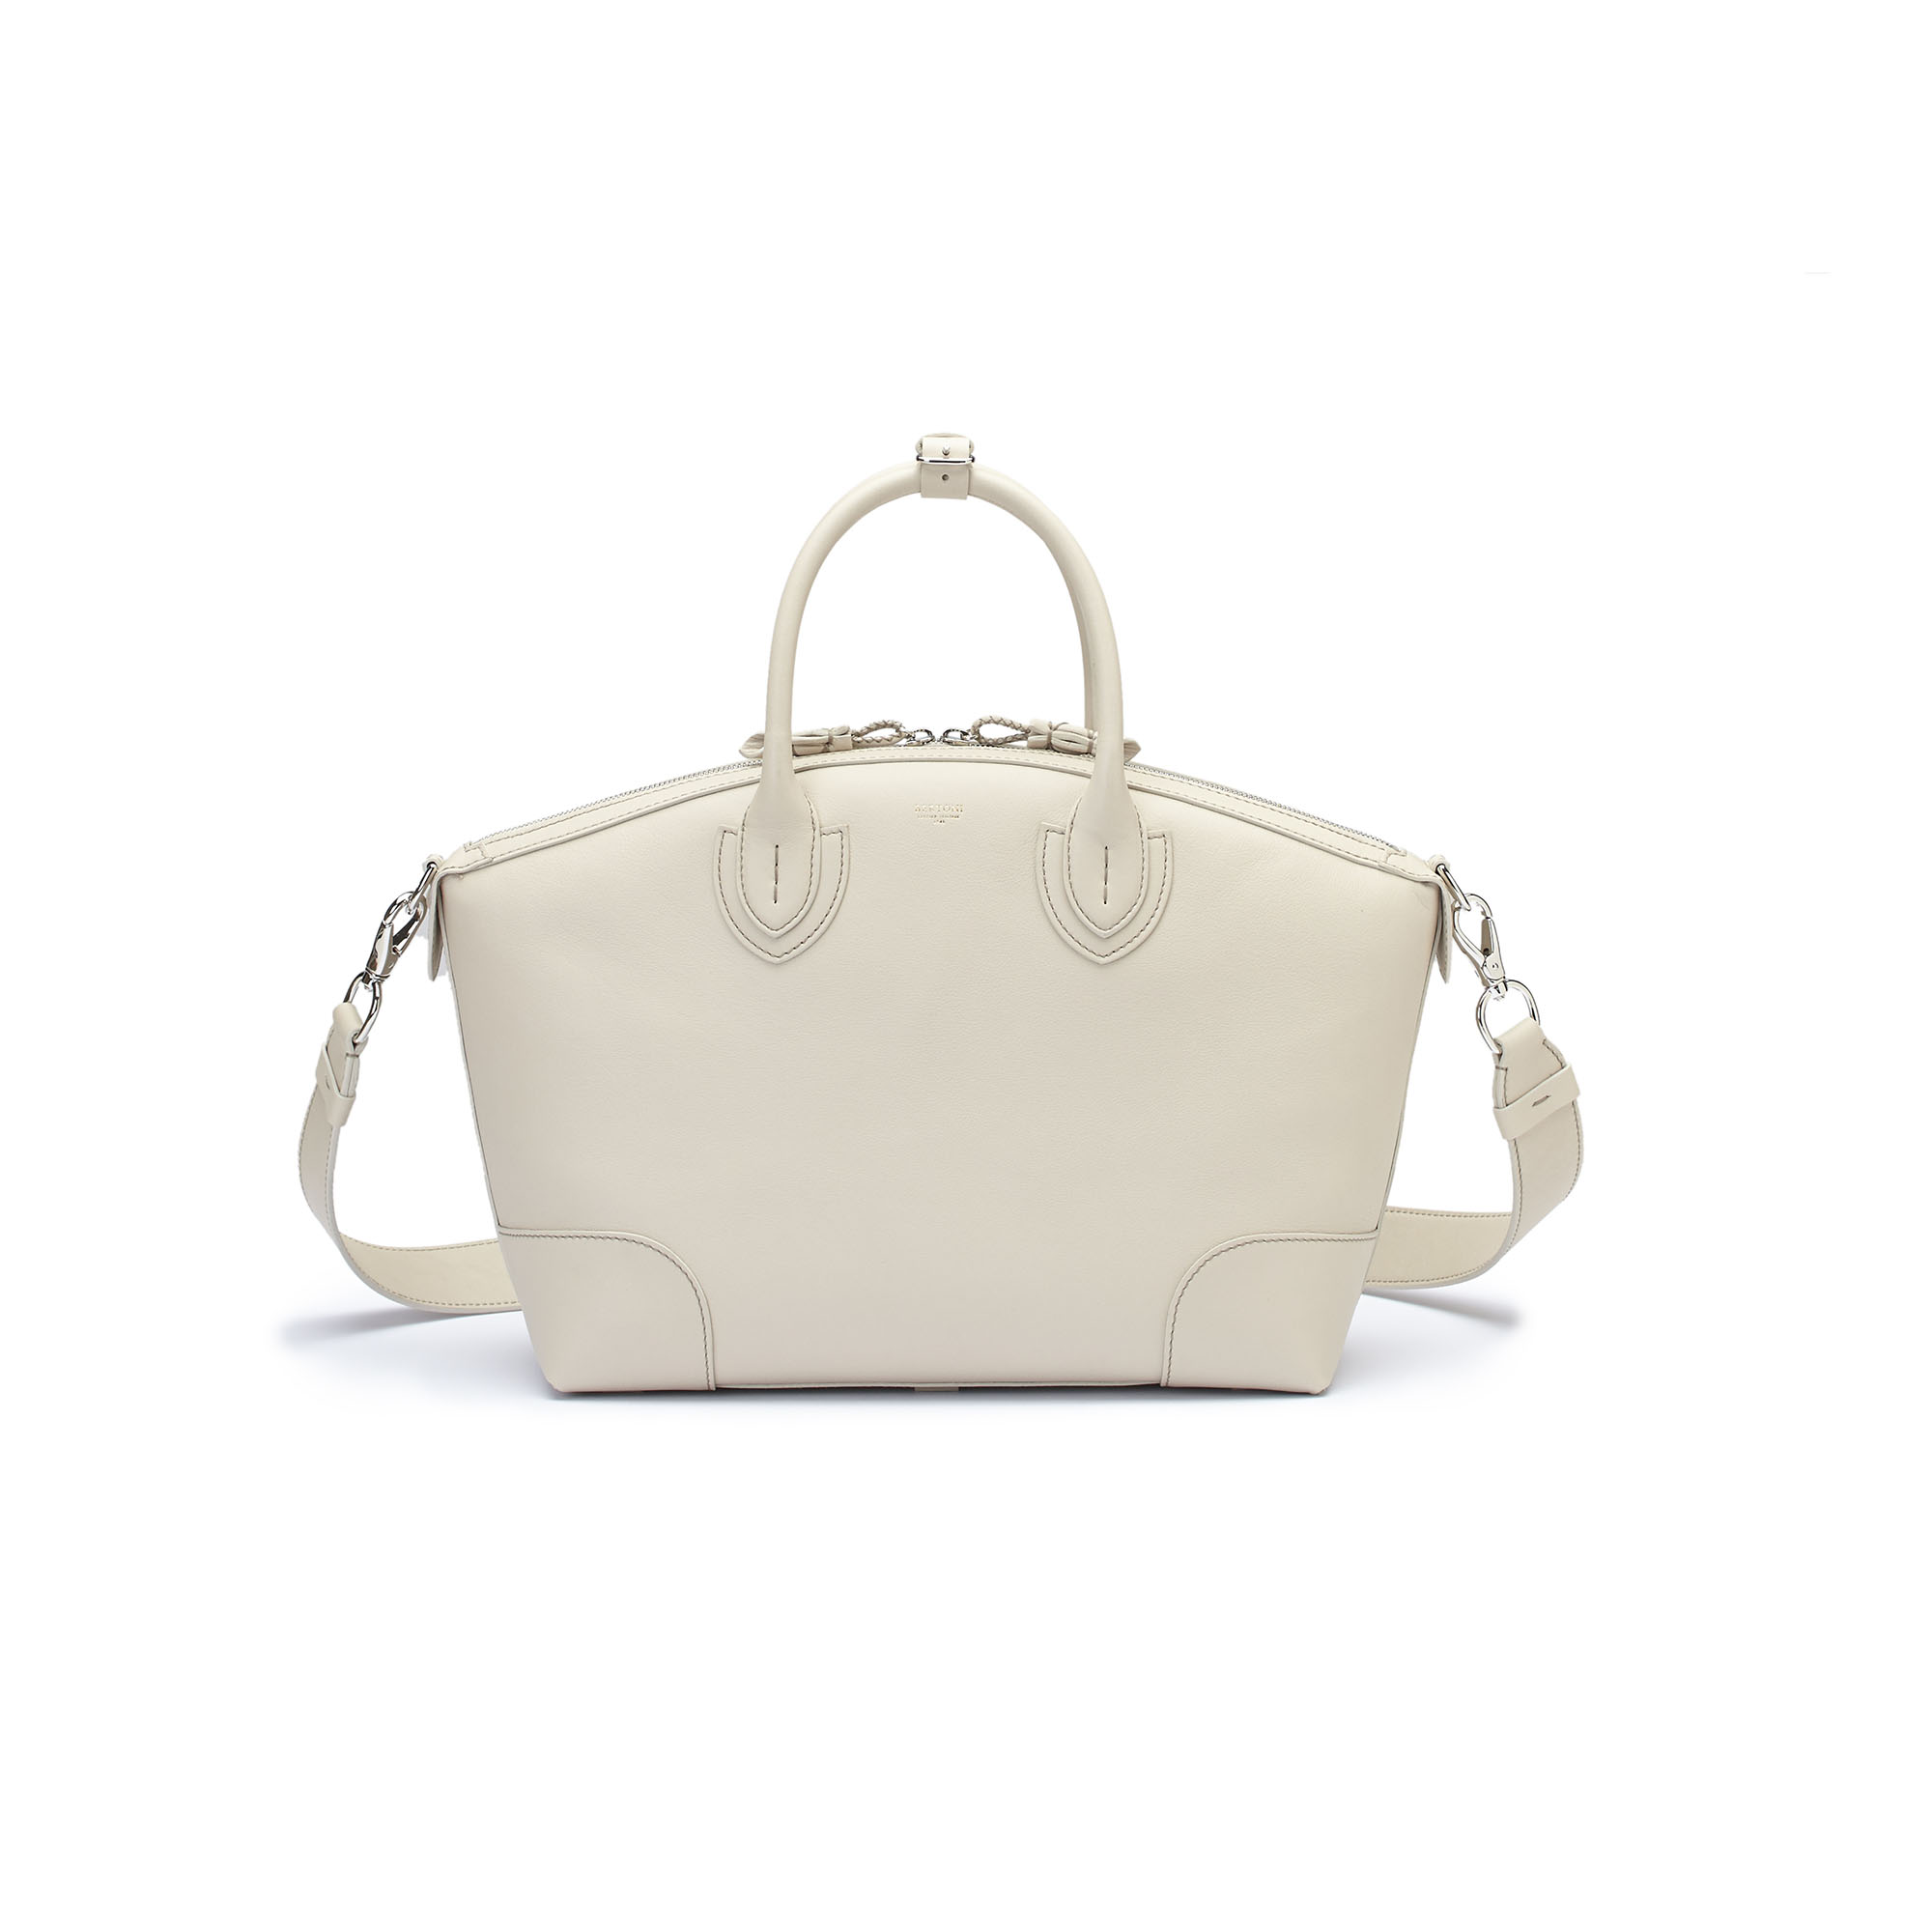 The ivory soft calf Anija bag by Bertoni 1949 03